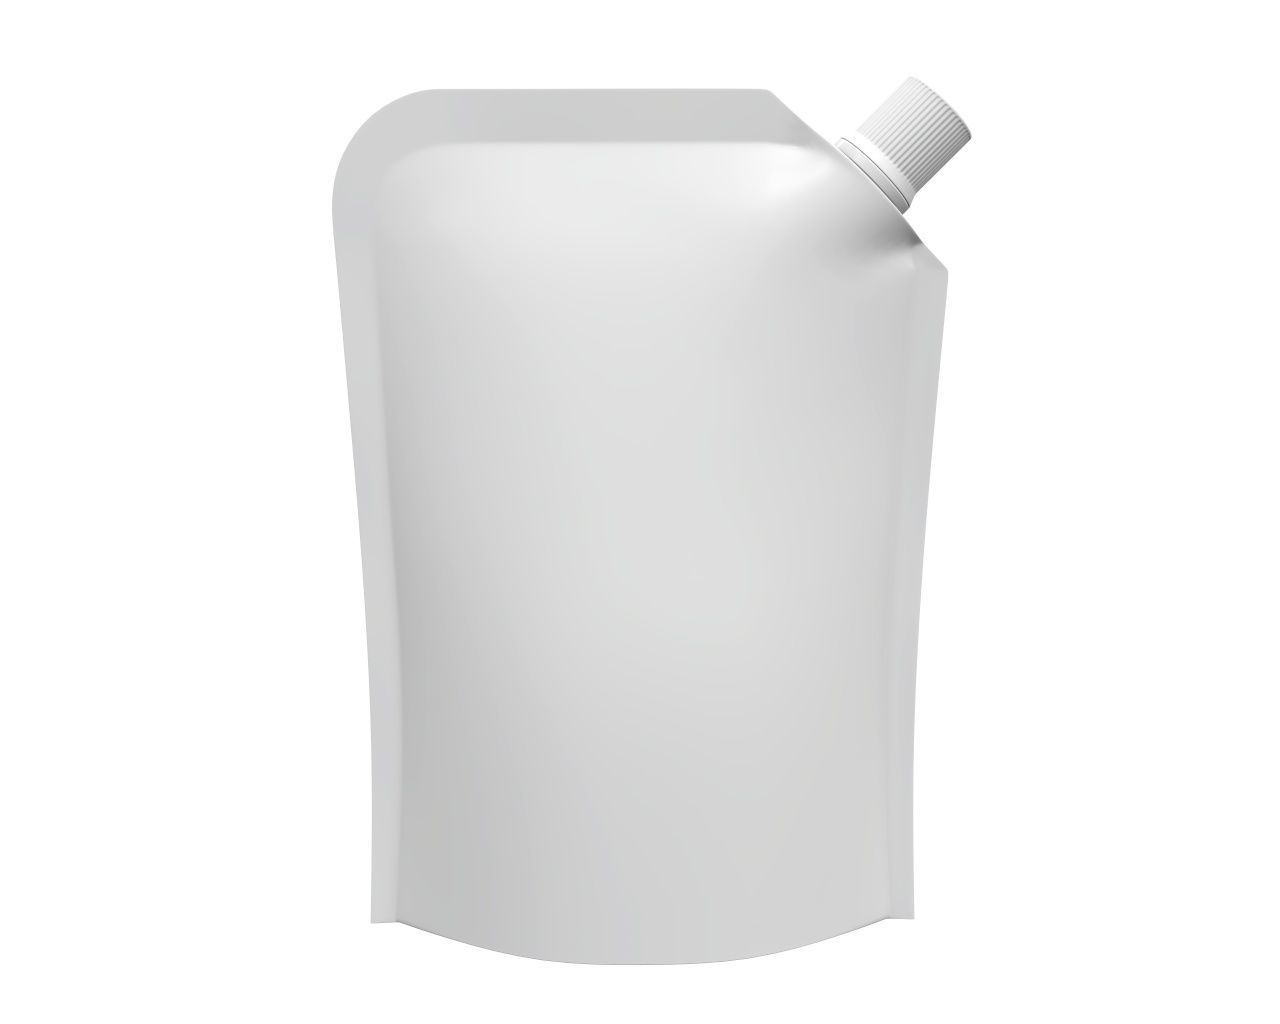 Blank Pouch Bag With Corner Spout Lid Mock Up 04